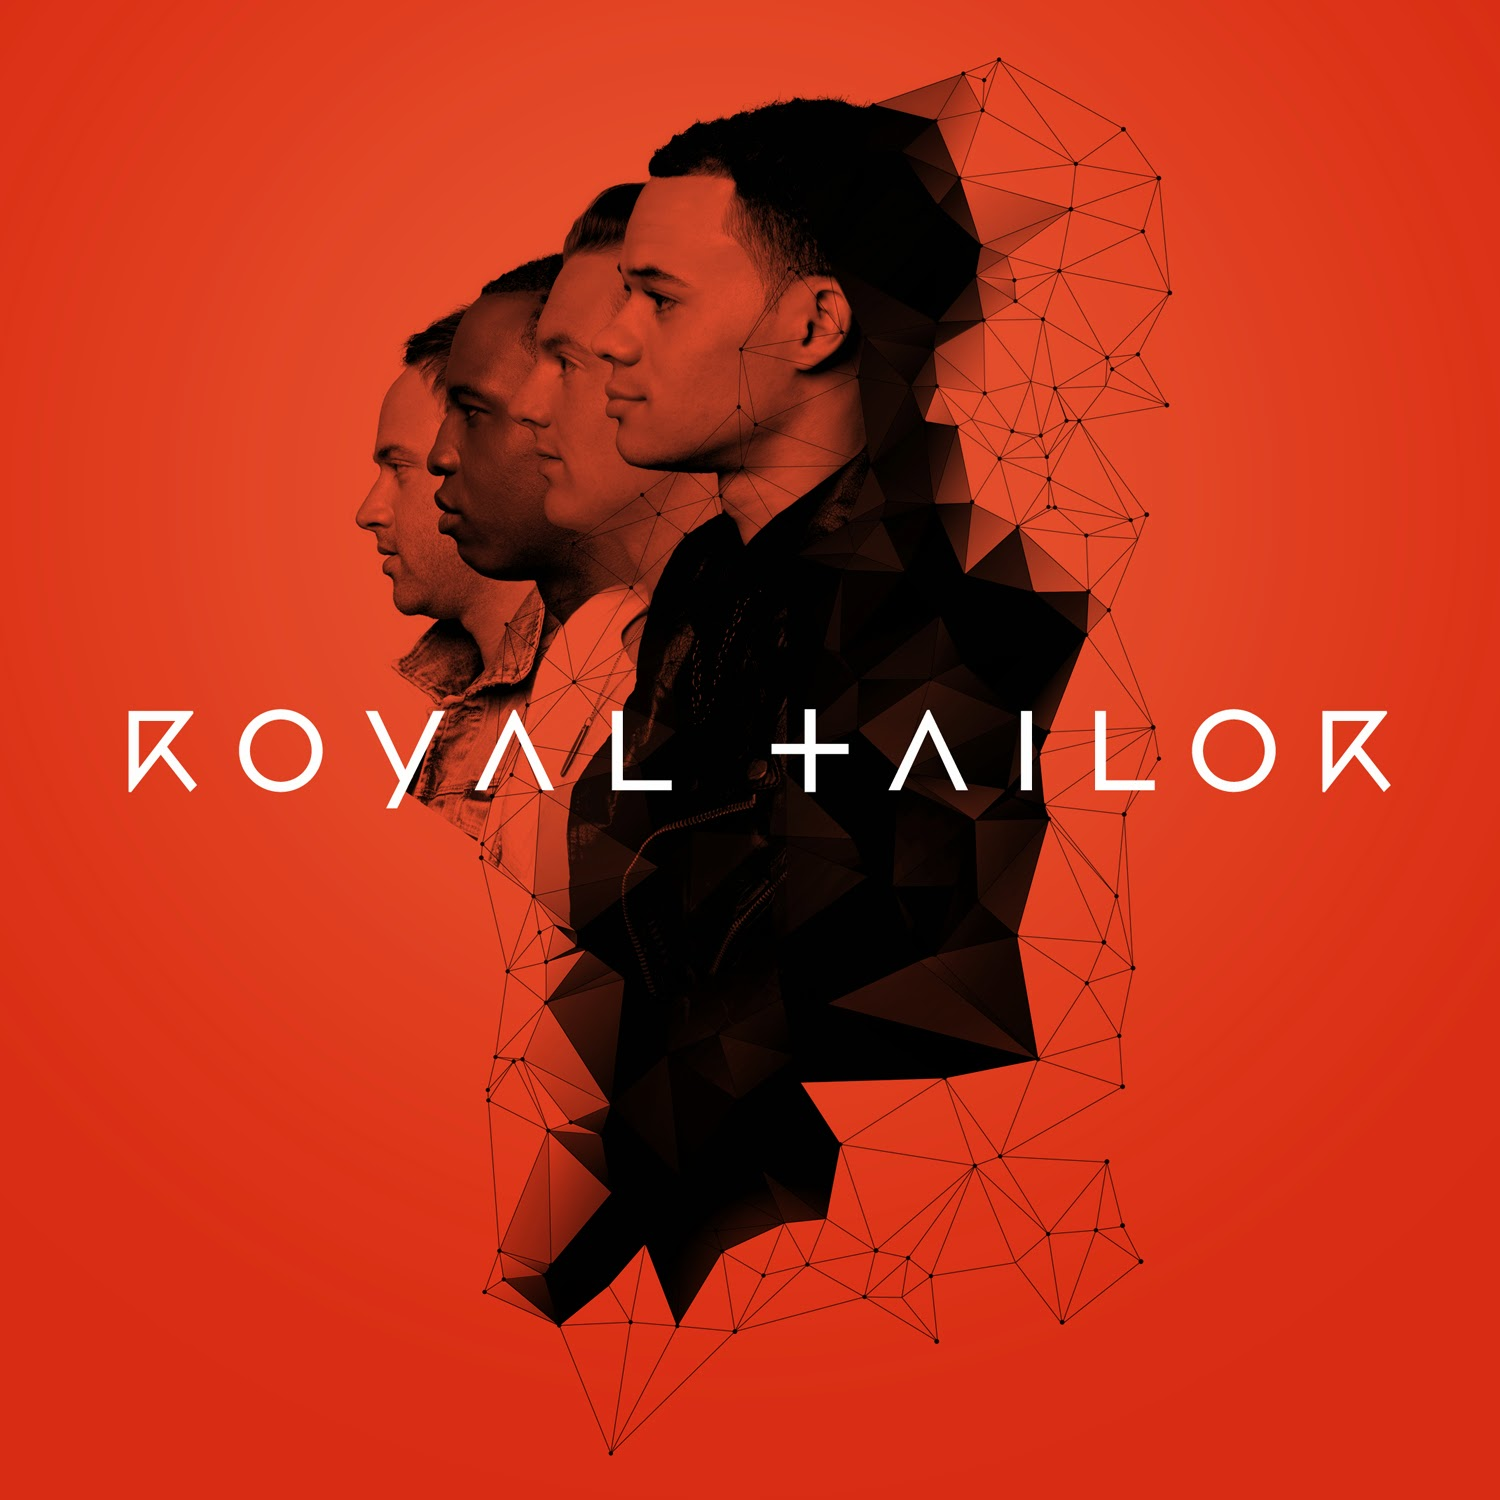 http://www.d4am.net/2014/02/royal-tailor-royal-tailor.html